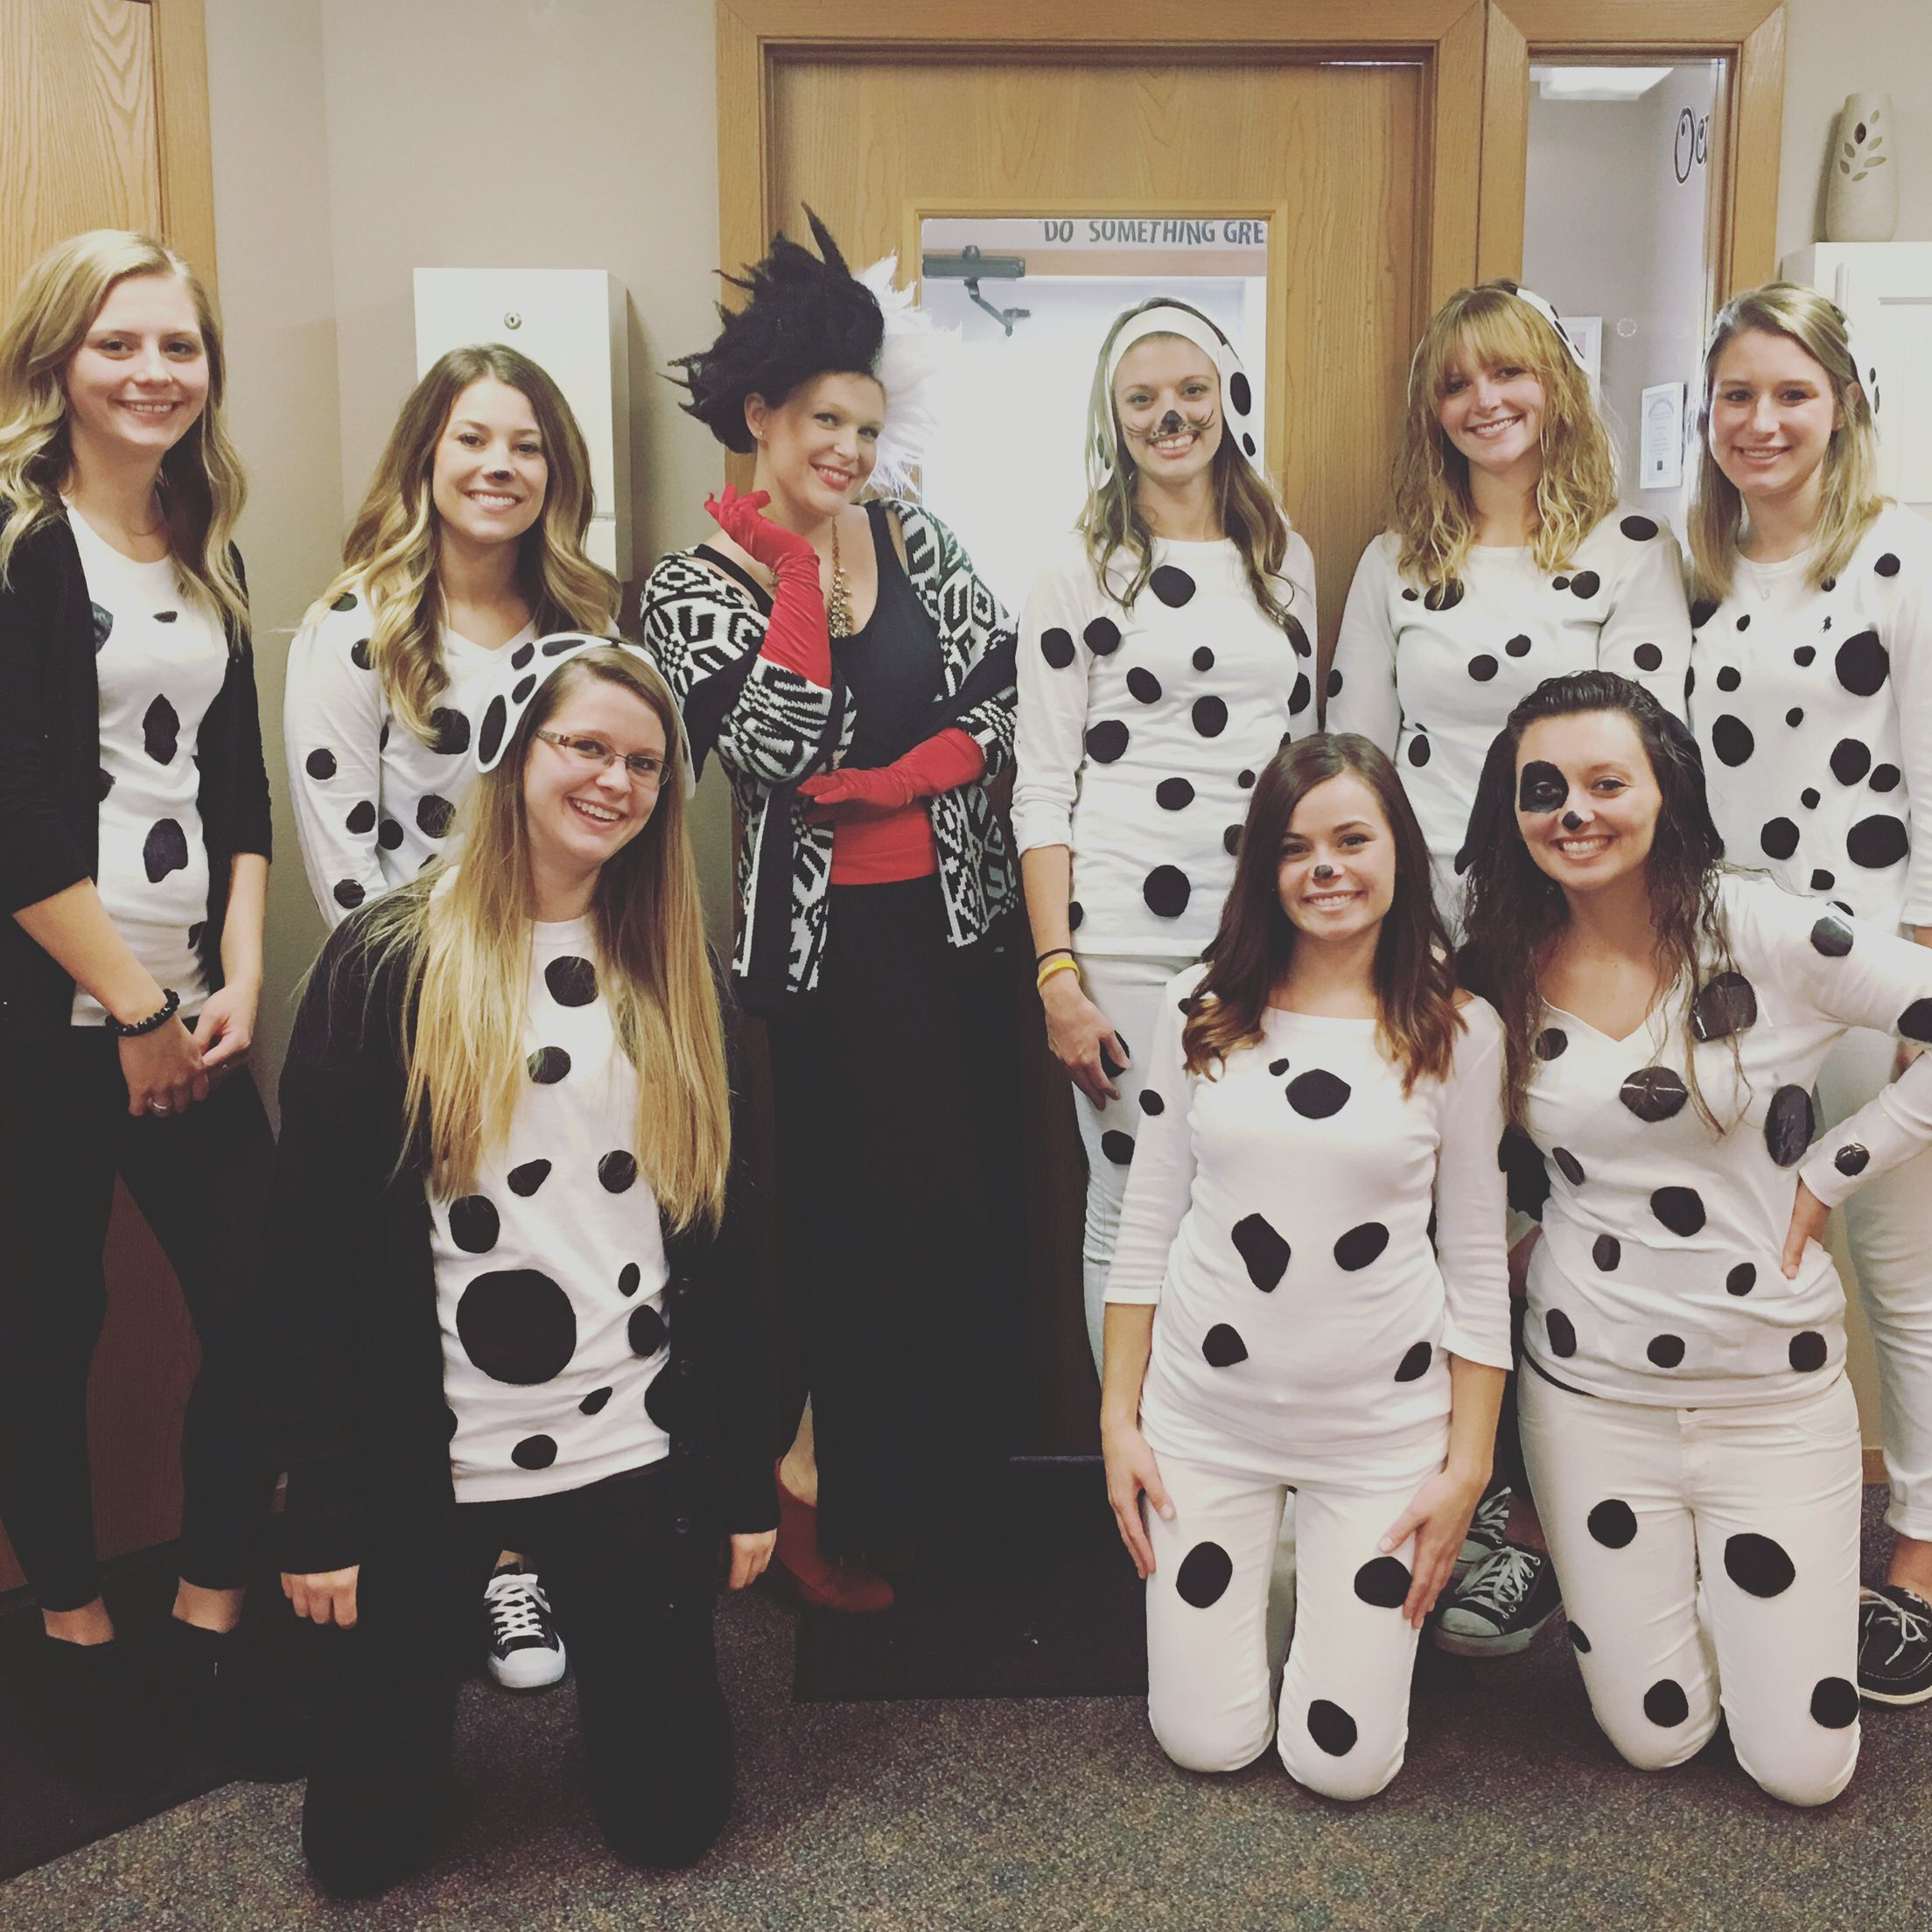 Dalmation Group Costume Halloween Costumes Work Cute